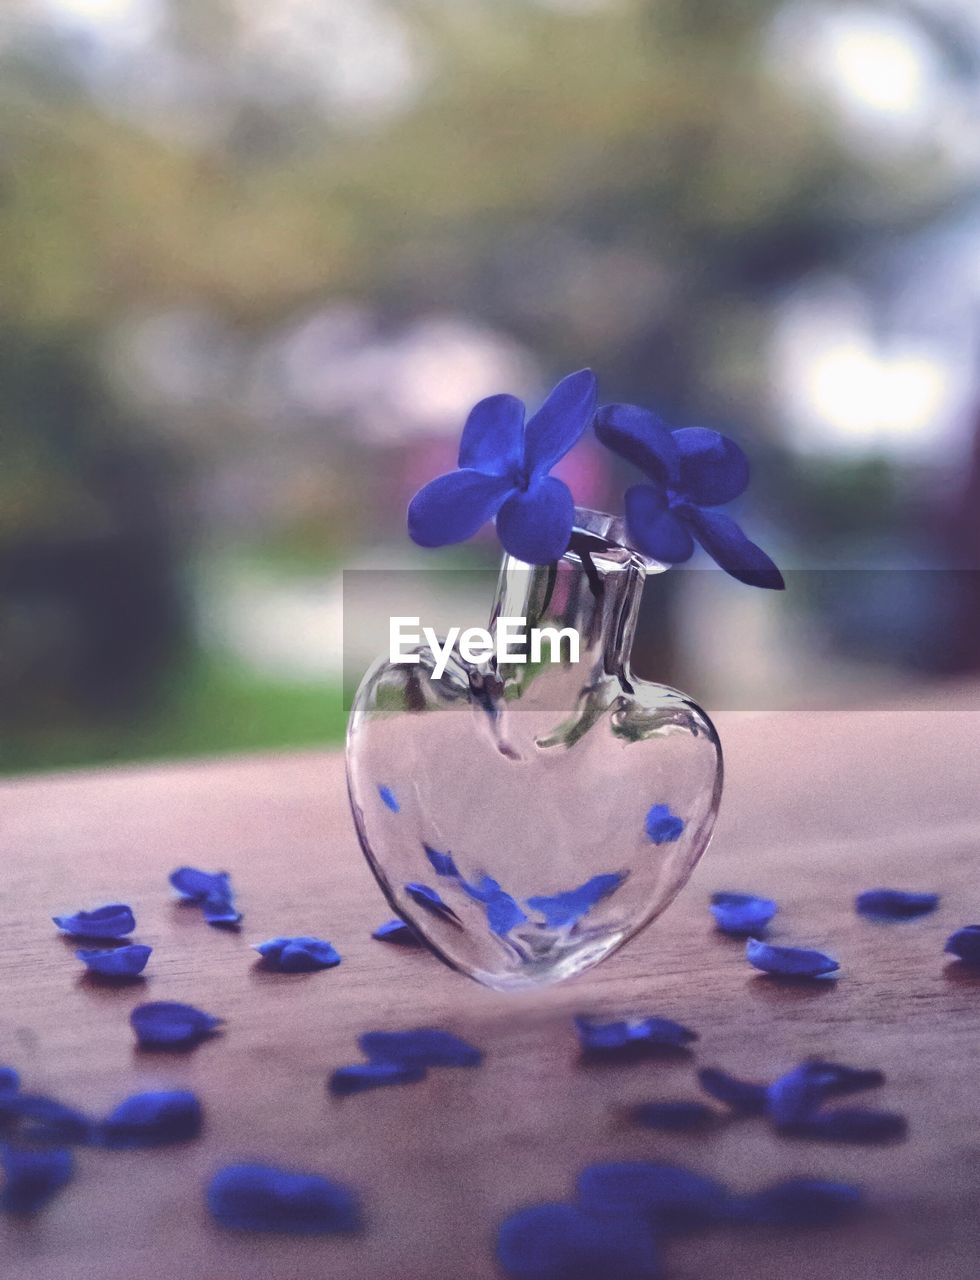 flowering plant, flower, plant, close-up, purple, table, selective focus, blue, nature, glass - material, vulnerability, fragility, no people, vase, freshness, focus on foreground, beauty in nature, container, day, indoors, flower head, silver colored